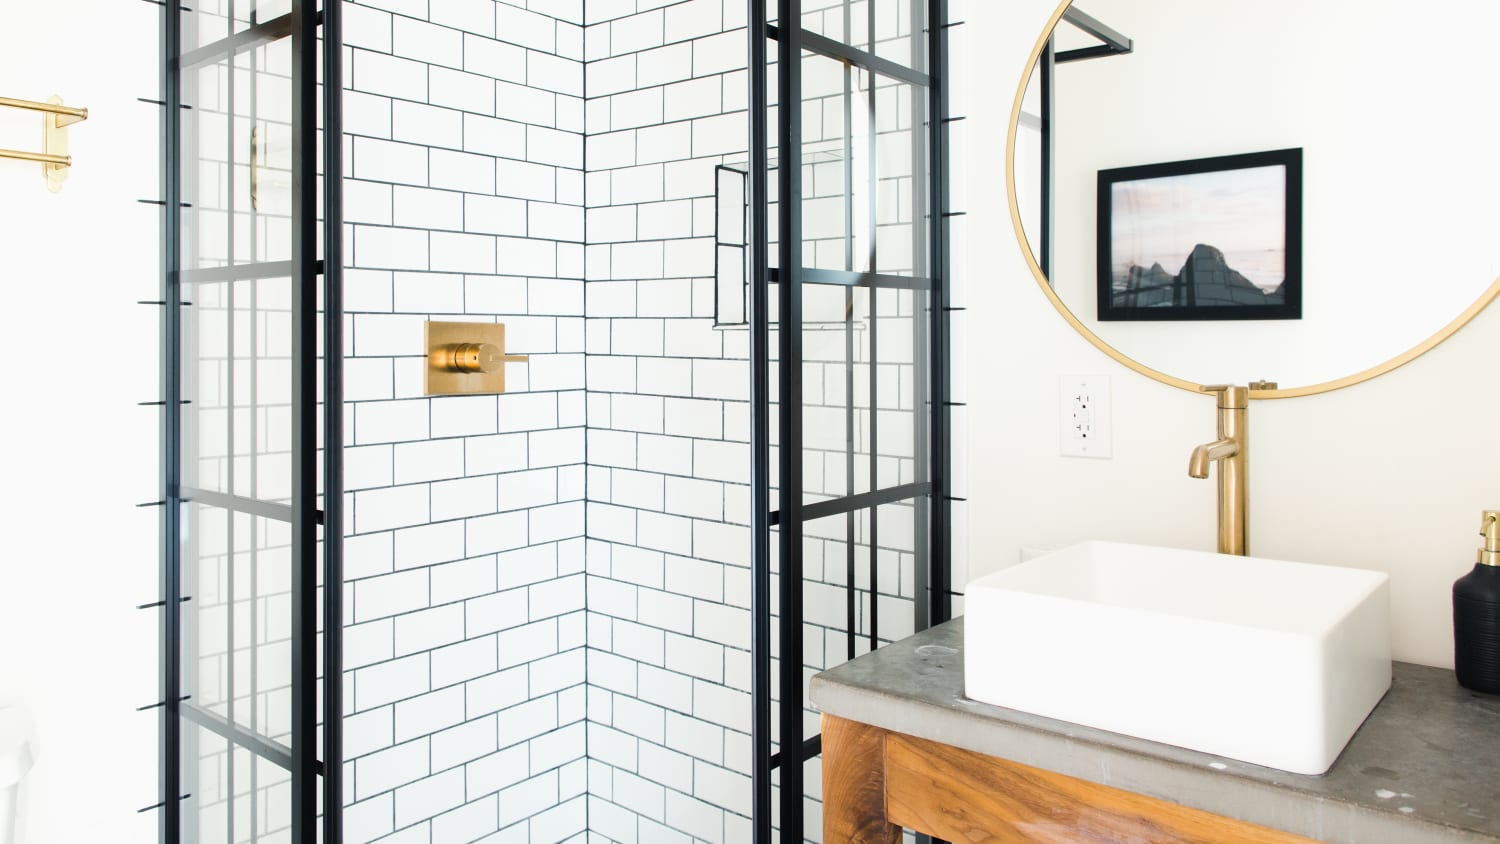 The Best Ways To Brighten Up A Window Free Bathroom Apartment Therapy